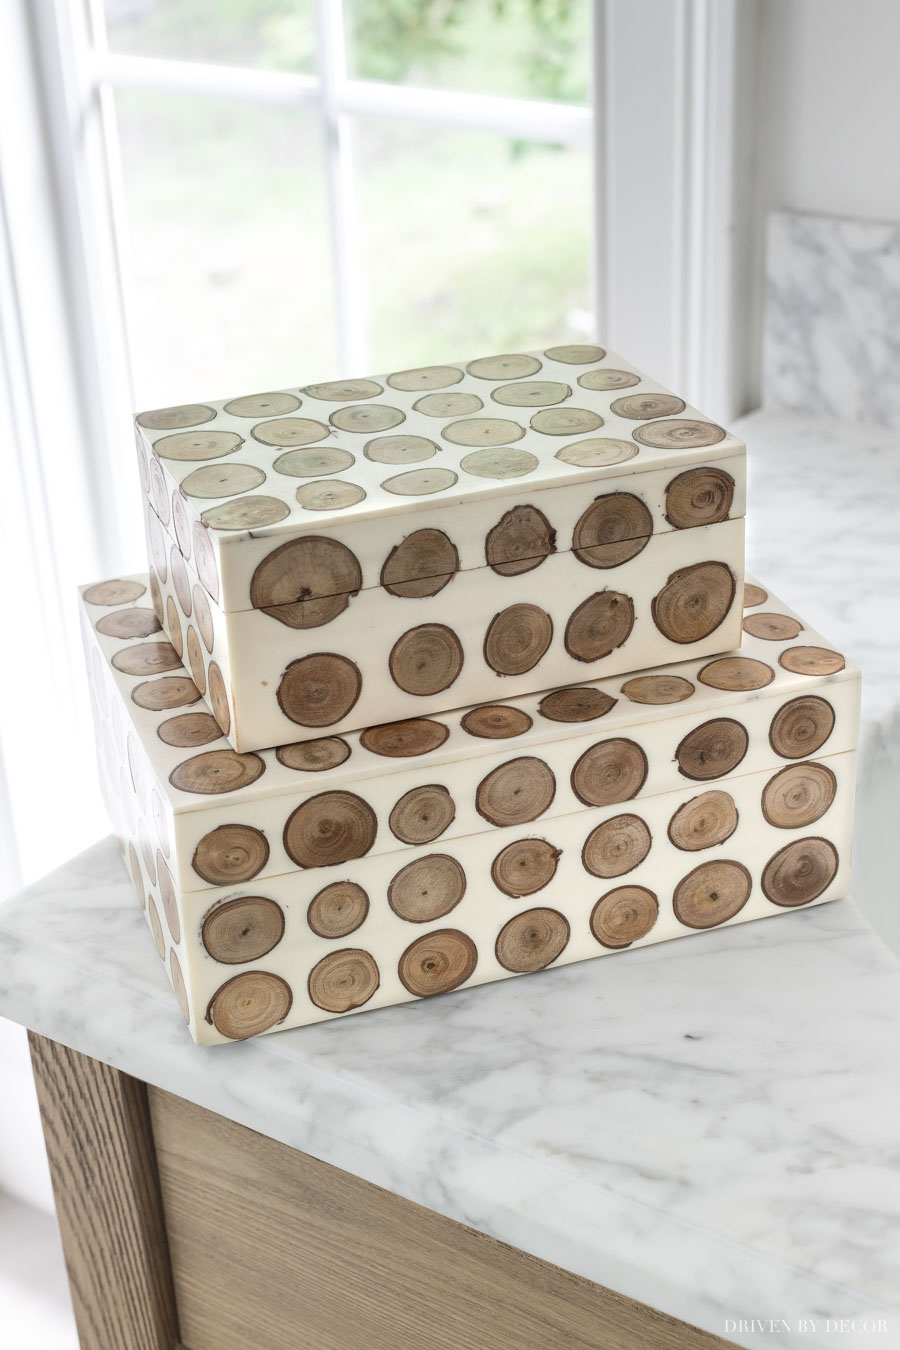 LOVE these decorative boxes - one of the pretty bathroom decor ideas in this post!